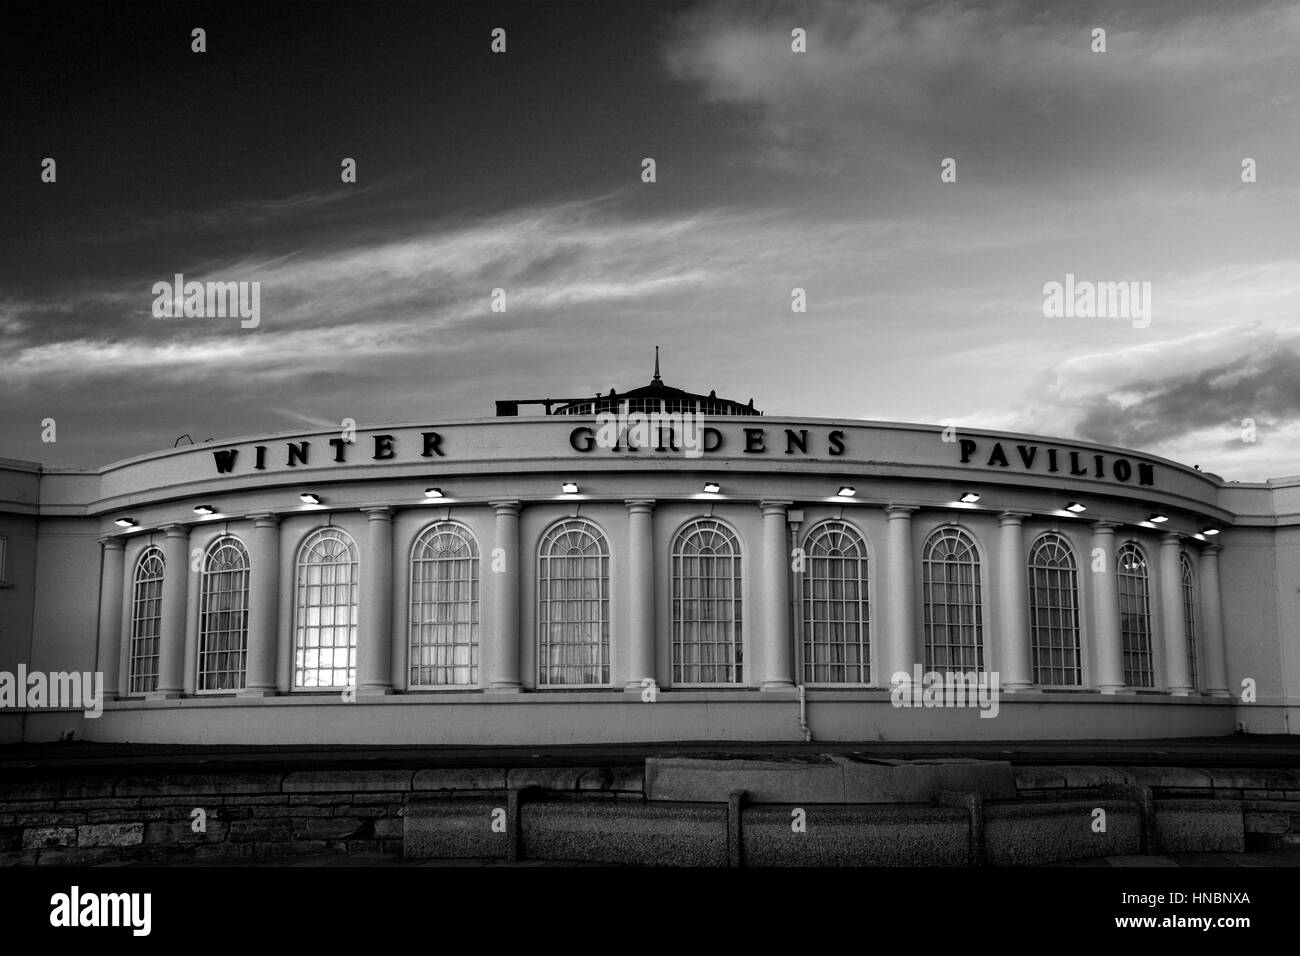 The Winter Gardens building, Weston Super Mare, Bristol Channel, Somerset County, England, UK - Stock Image